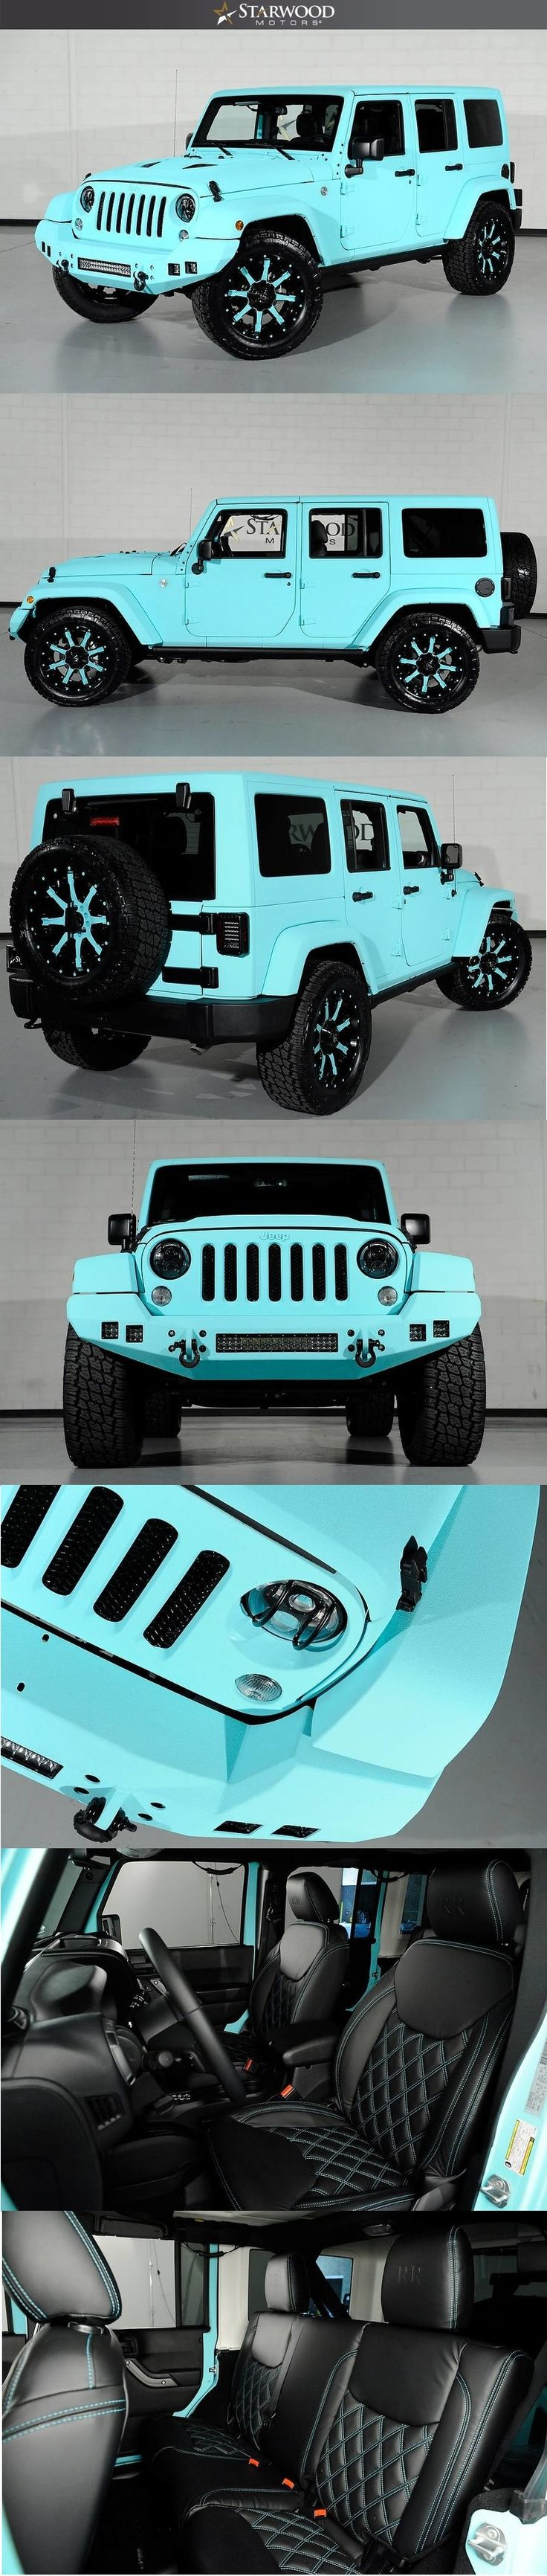 Starwood Motors Custom Tiffany Blue Jeep Wrangler..IM IN LOVE https://www.amazon.co.uk/Baby-Car-Mirror-Shatterproof-Installation/dp/B06XHG6SSY/ref=sr_1_2?ie=UTF8&qid=1499074433&sr=8-2&keywords=Kingseye